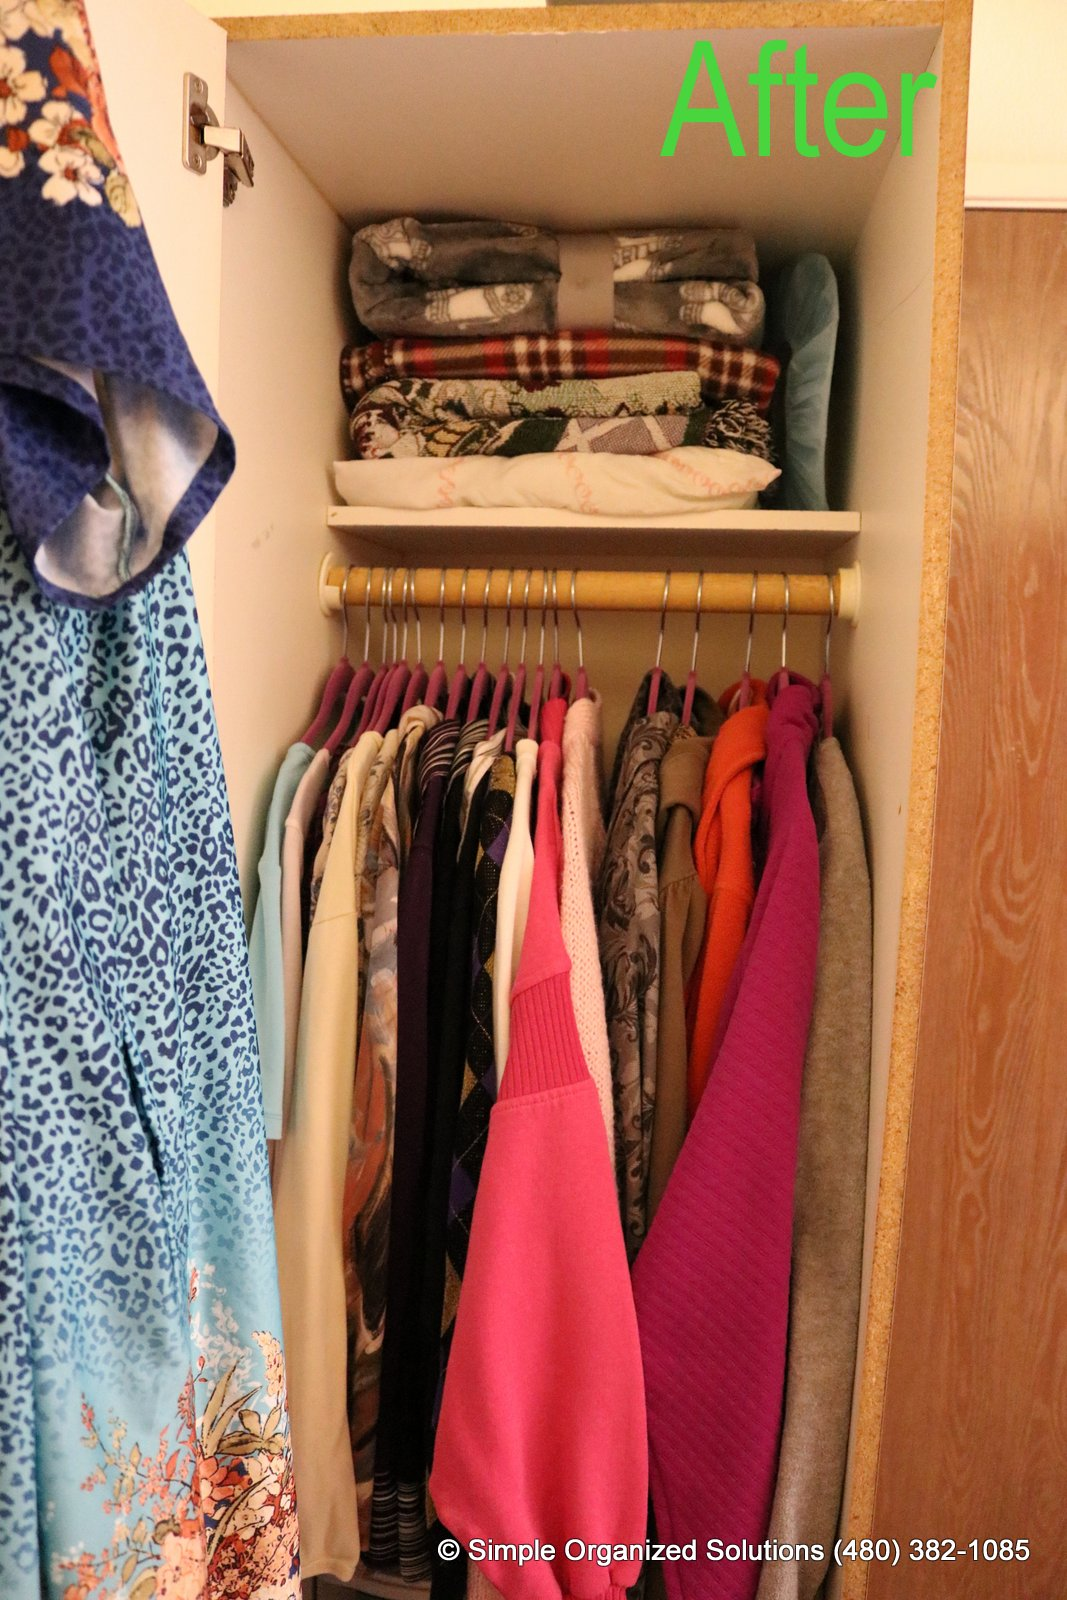 Closet organization_after photo